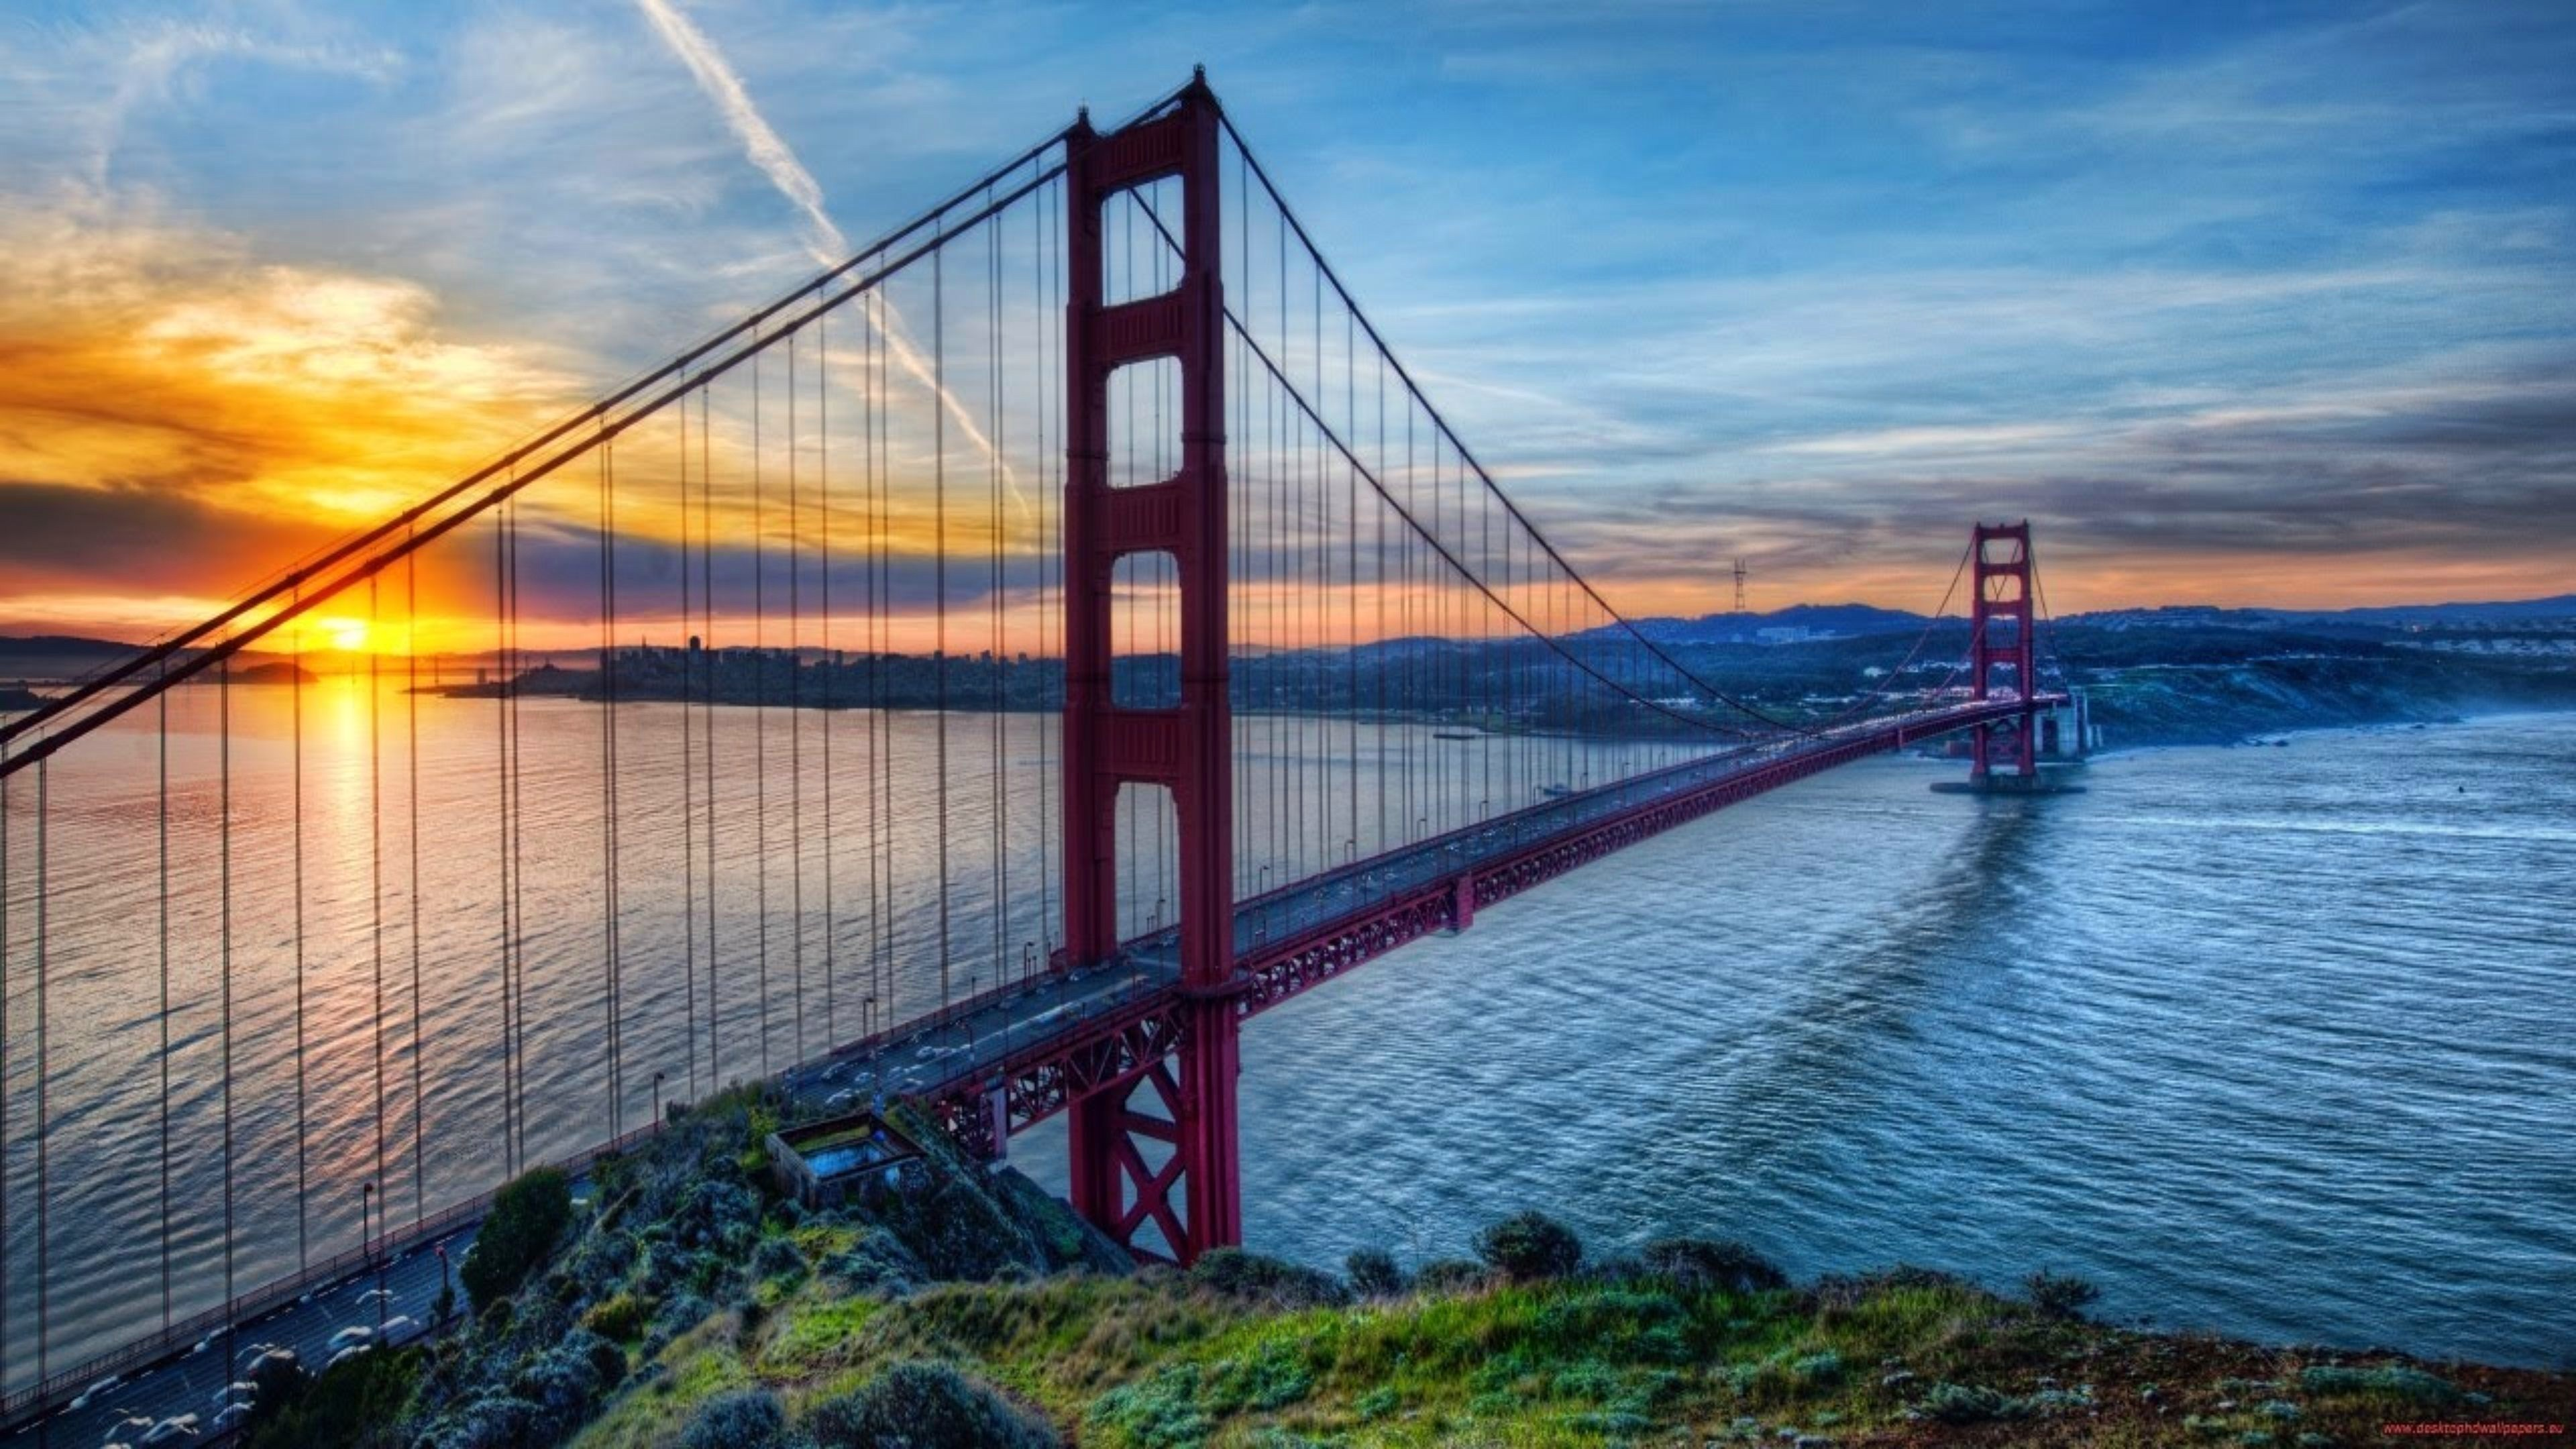 san-francisco-4k-hd-wallpapers-unabuenaidea.es (35)